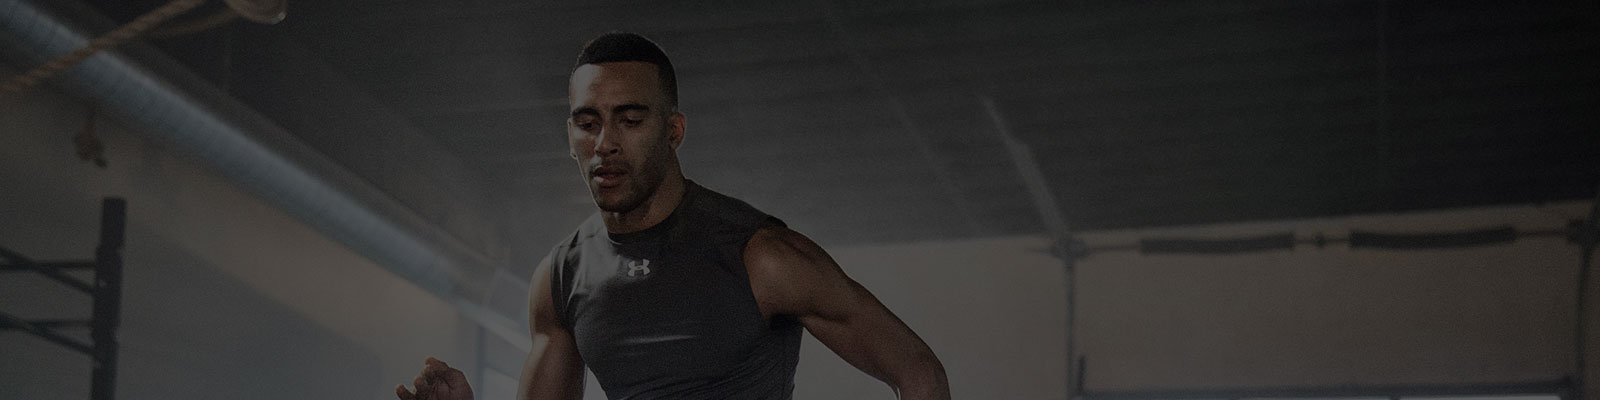 case hero under armour 2 - Under Armour Leverages the Strength of OpenX's Ad Exchange in Mobile